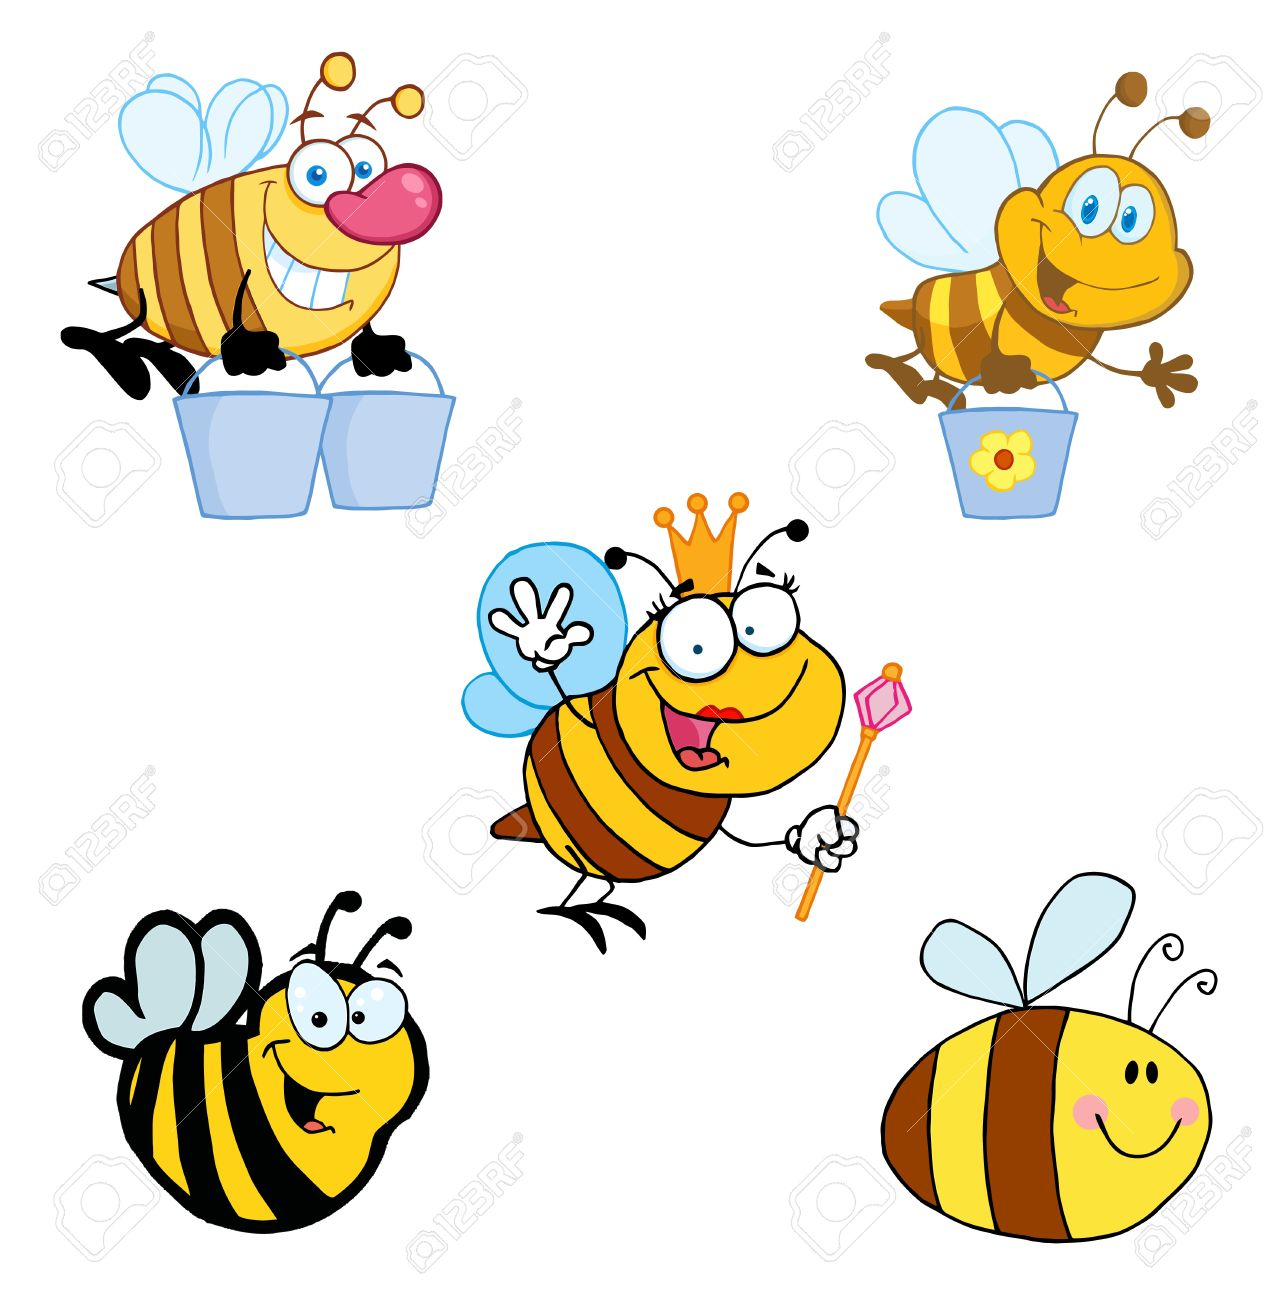 bumble bee stock photos royalty free bumble bee images and pictures